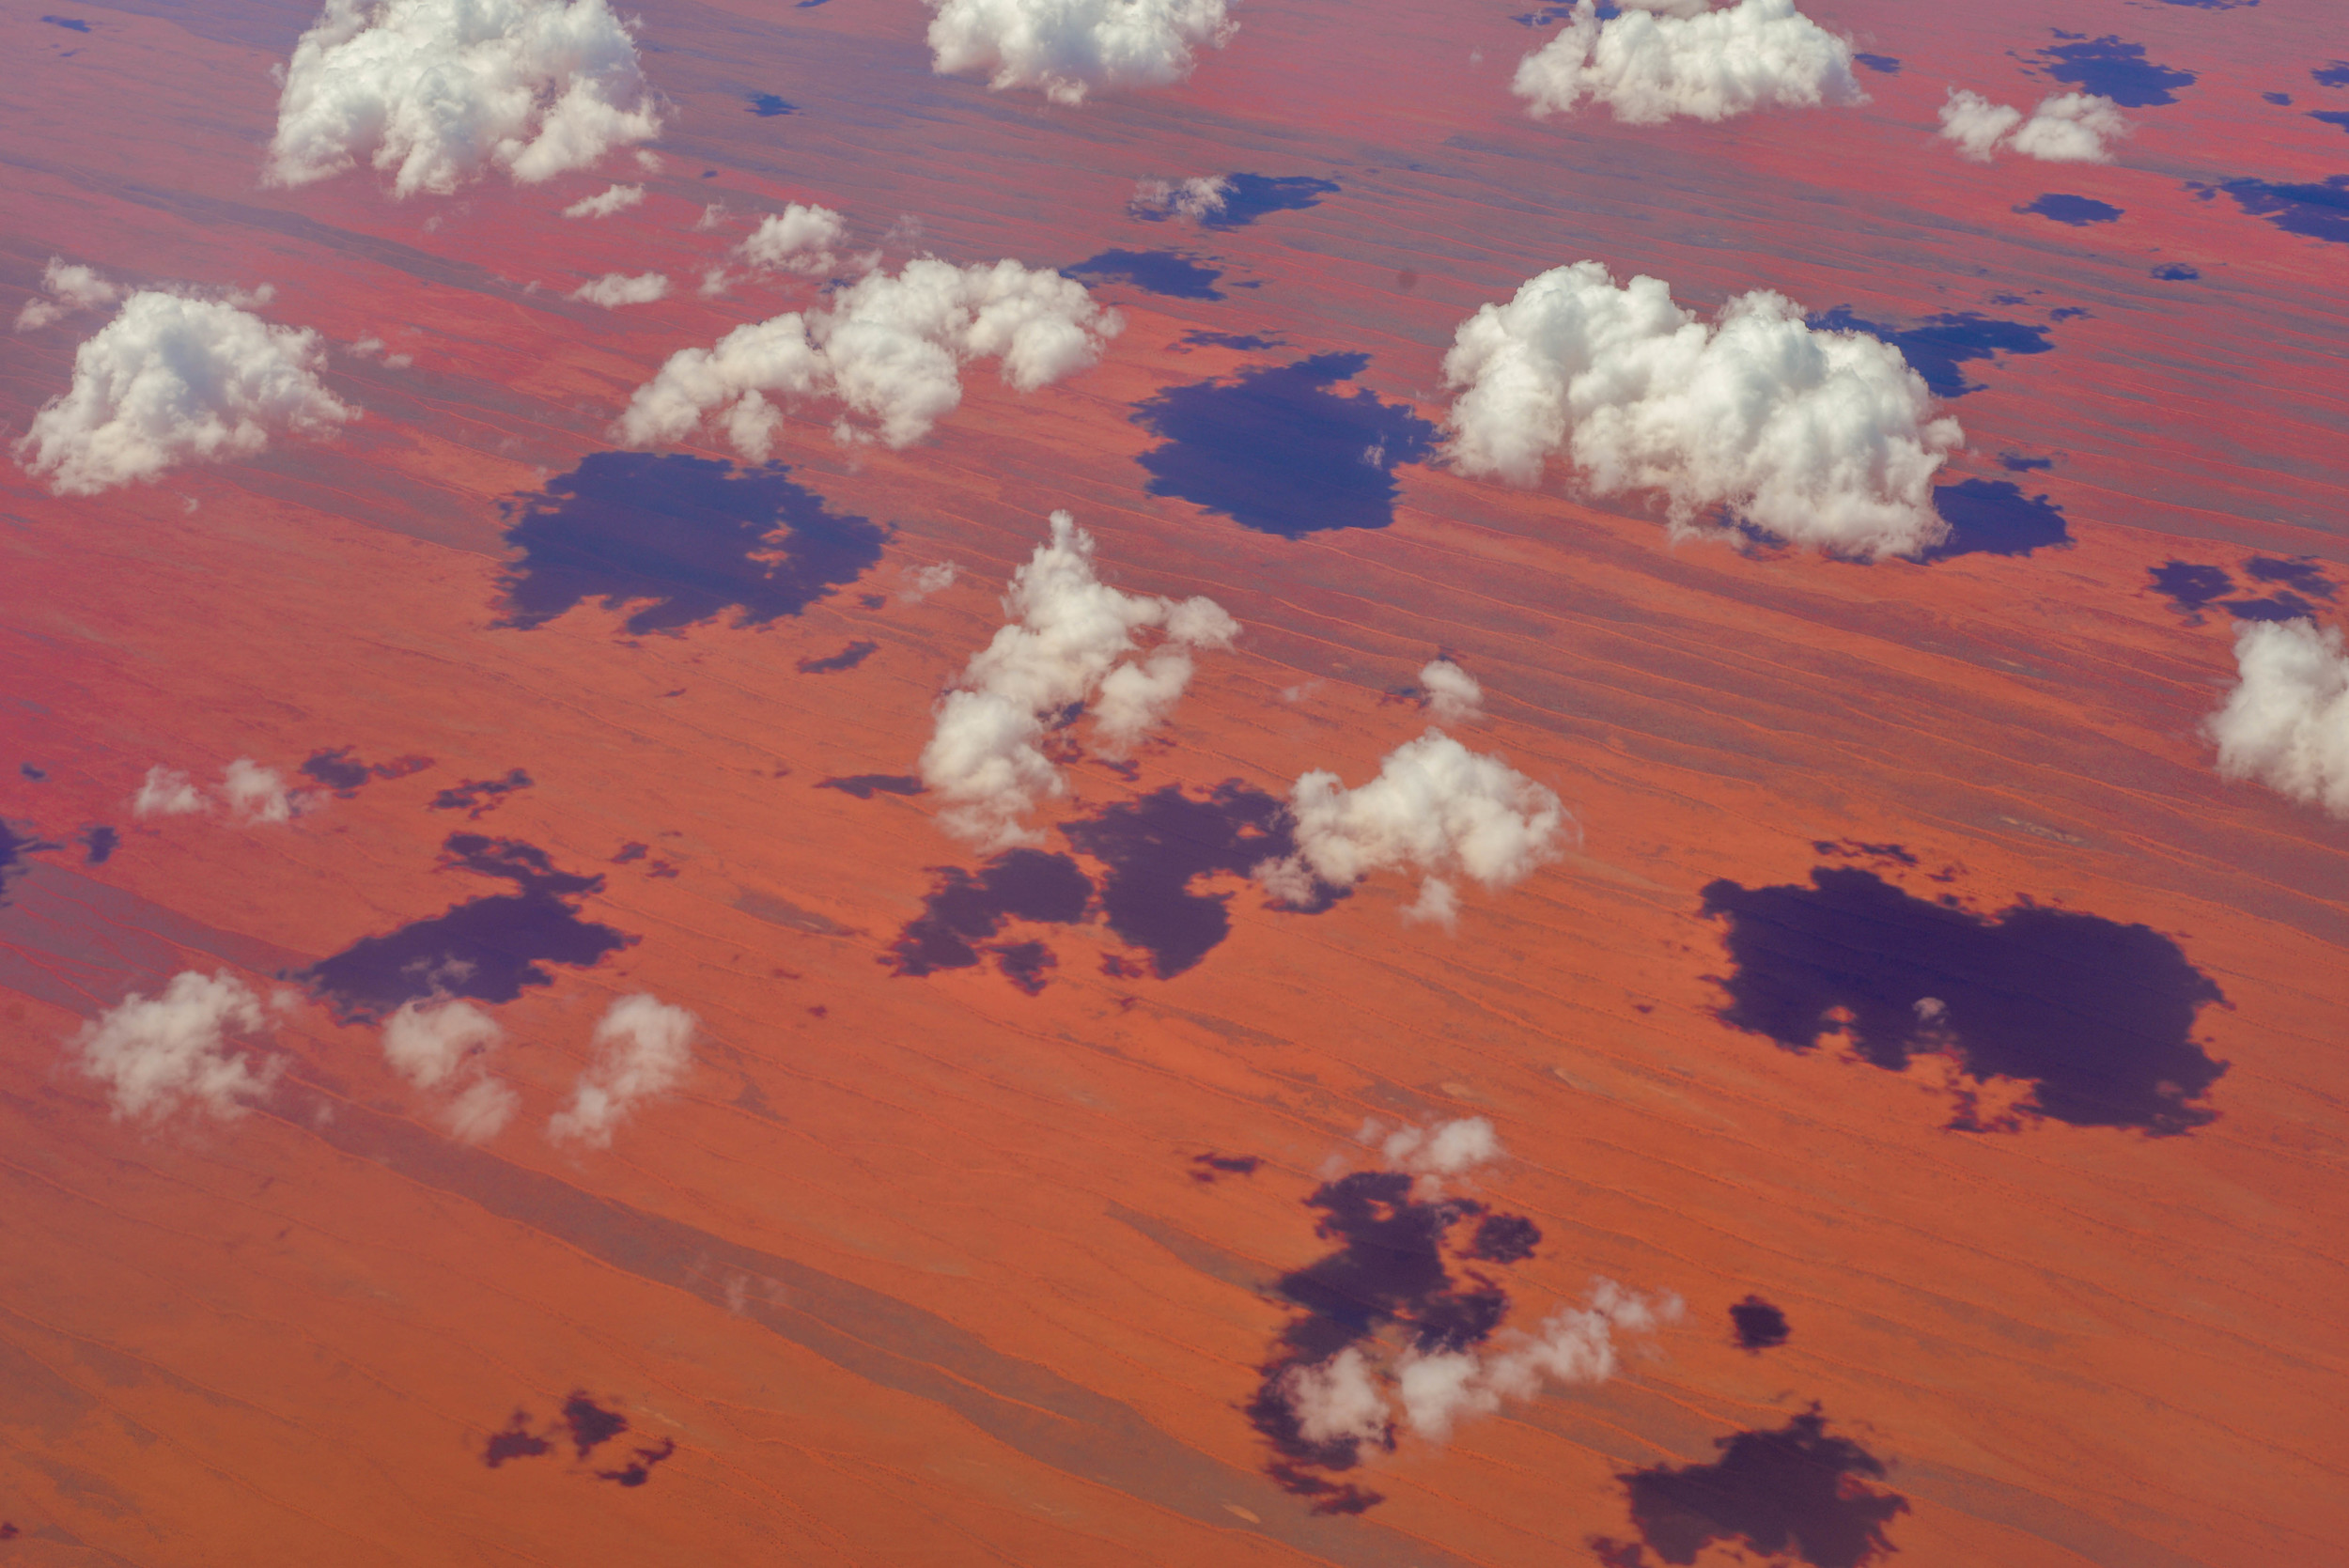 Flying over red desert in the middle of Australia